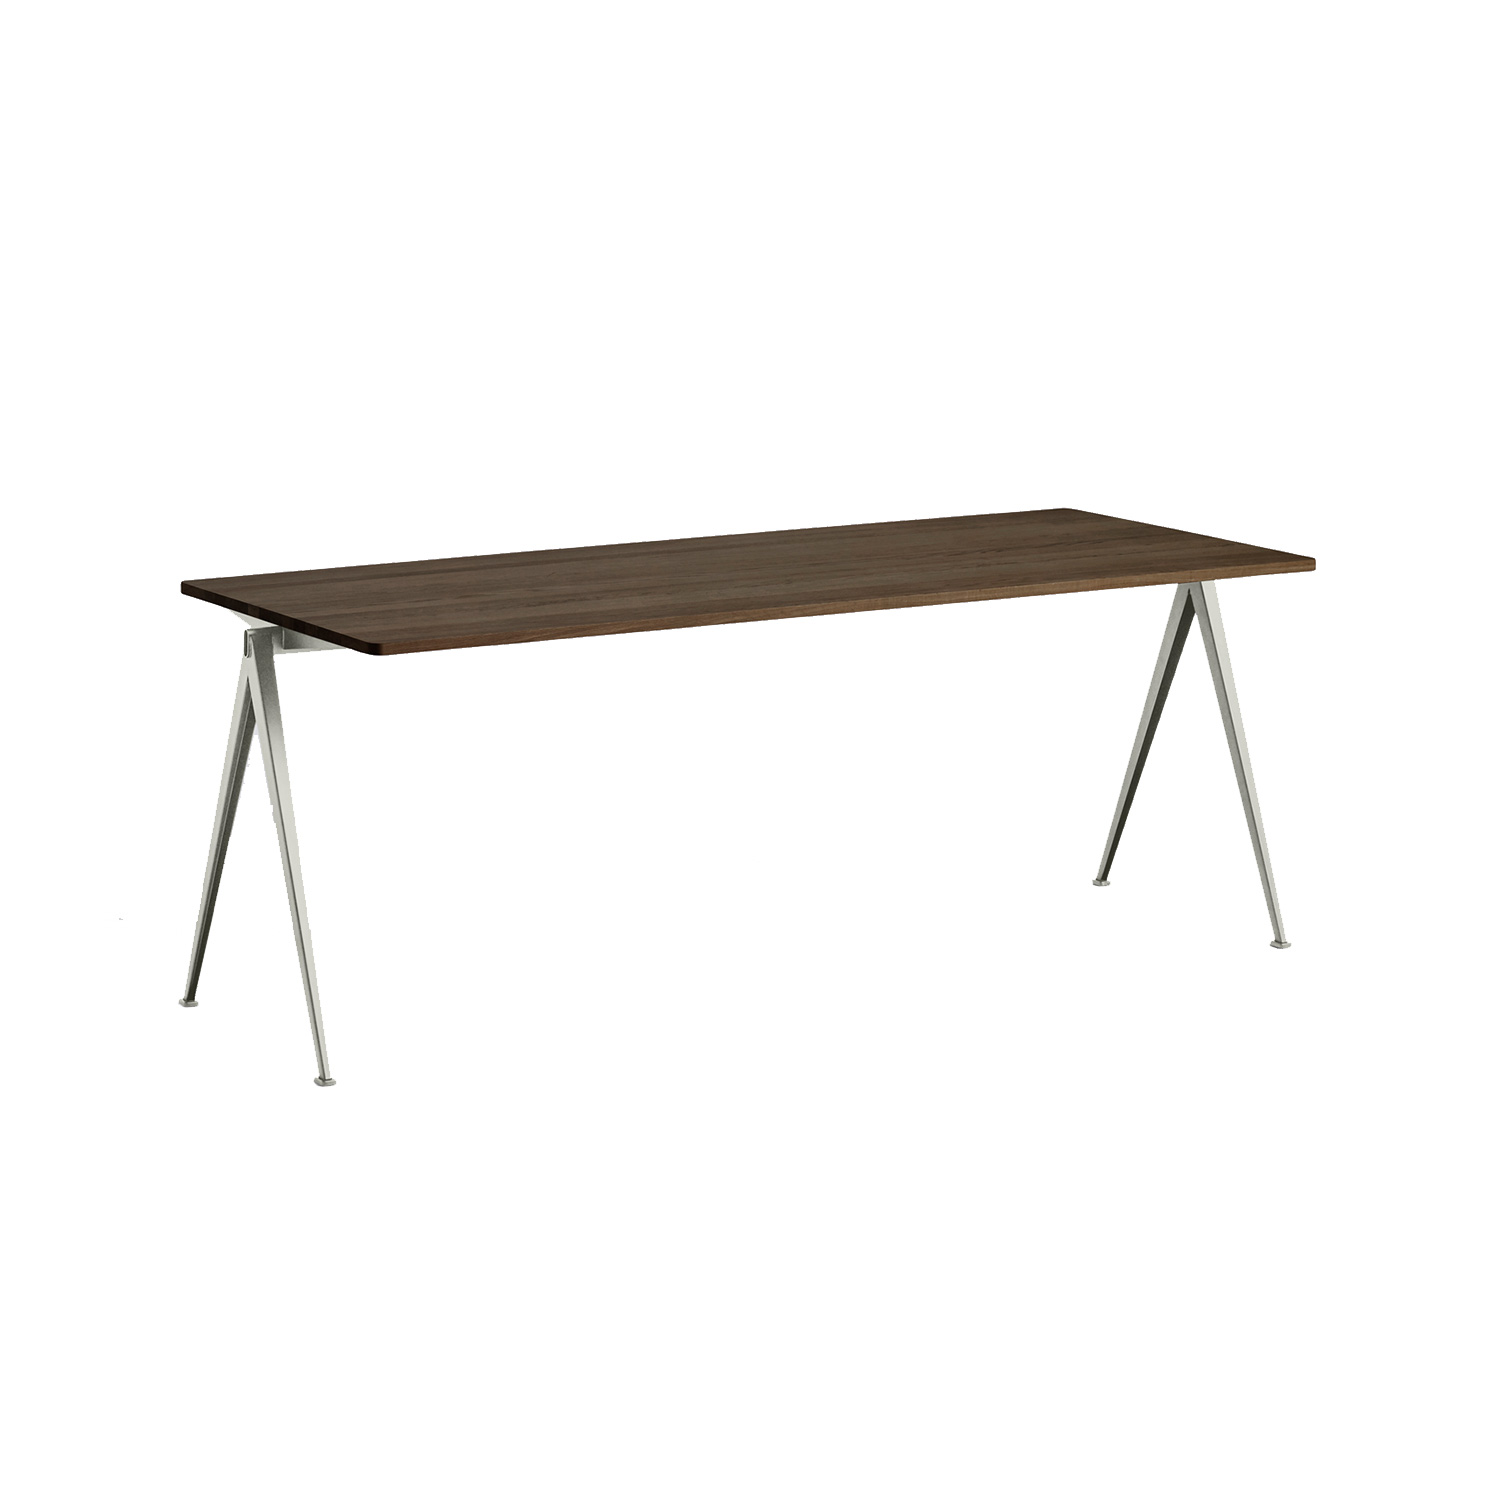 Pyramid desk 01 200x75, beige frame/smoked